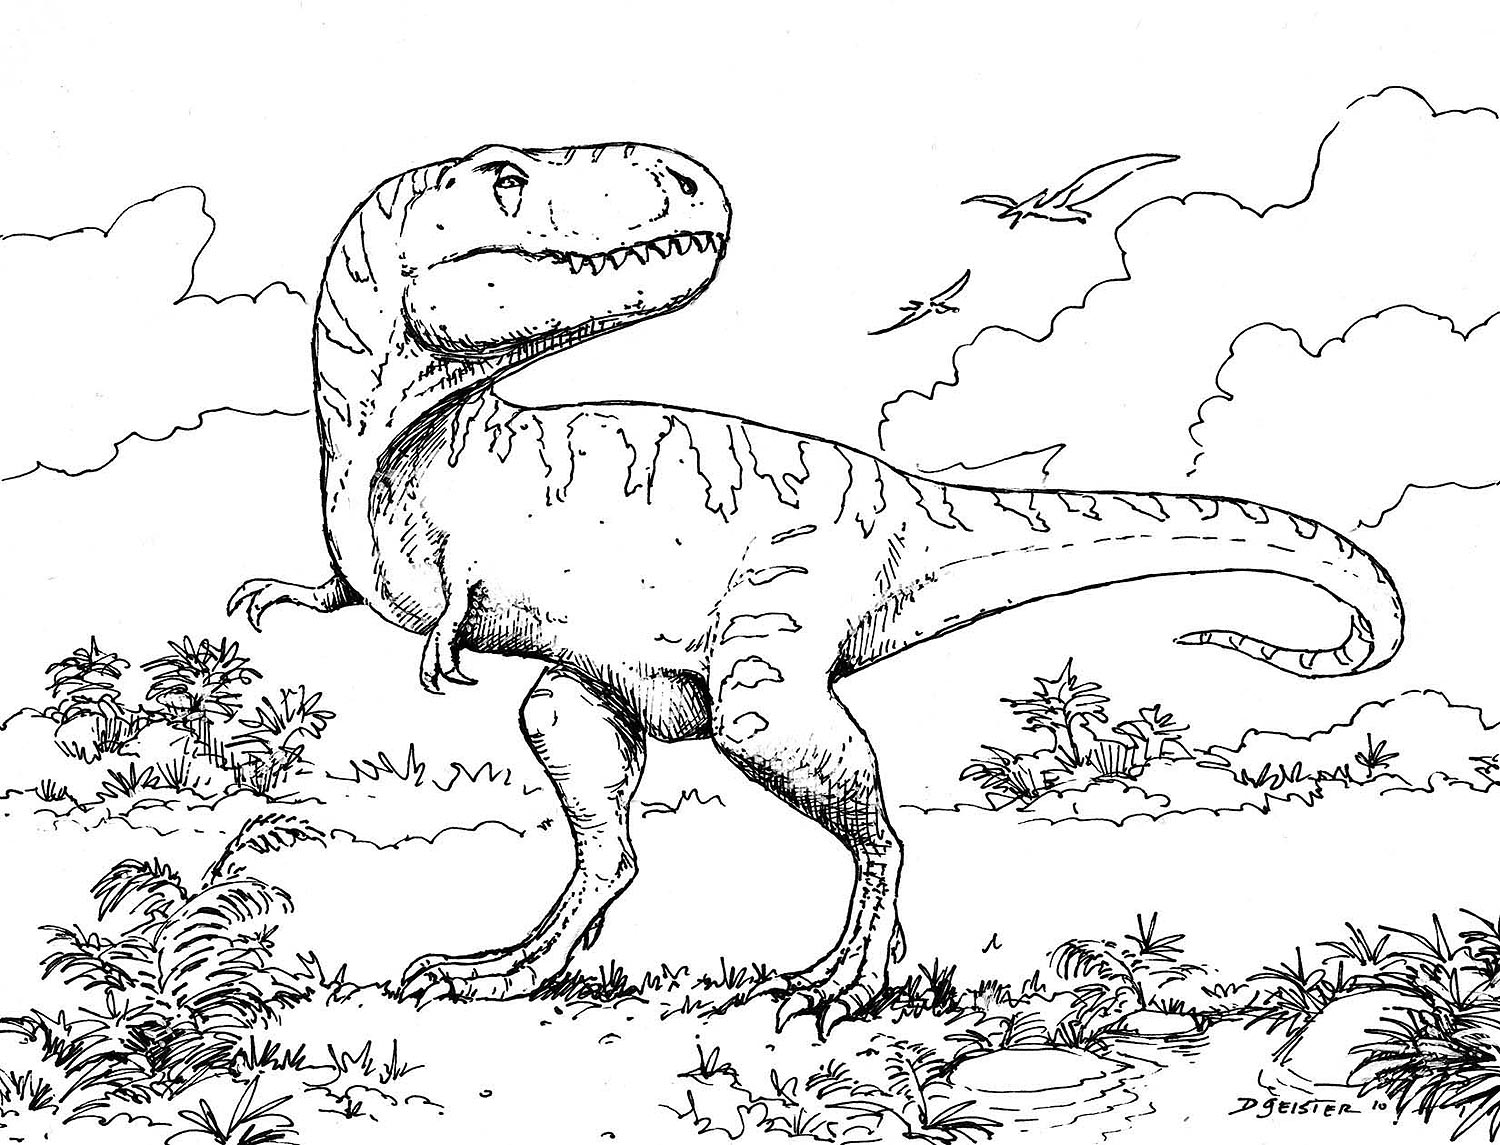 dinasaur coloring pages - photo#11